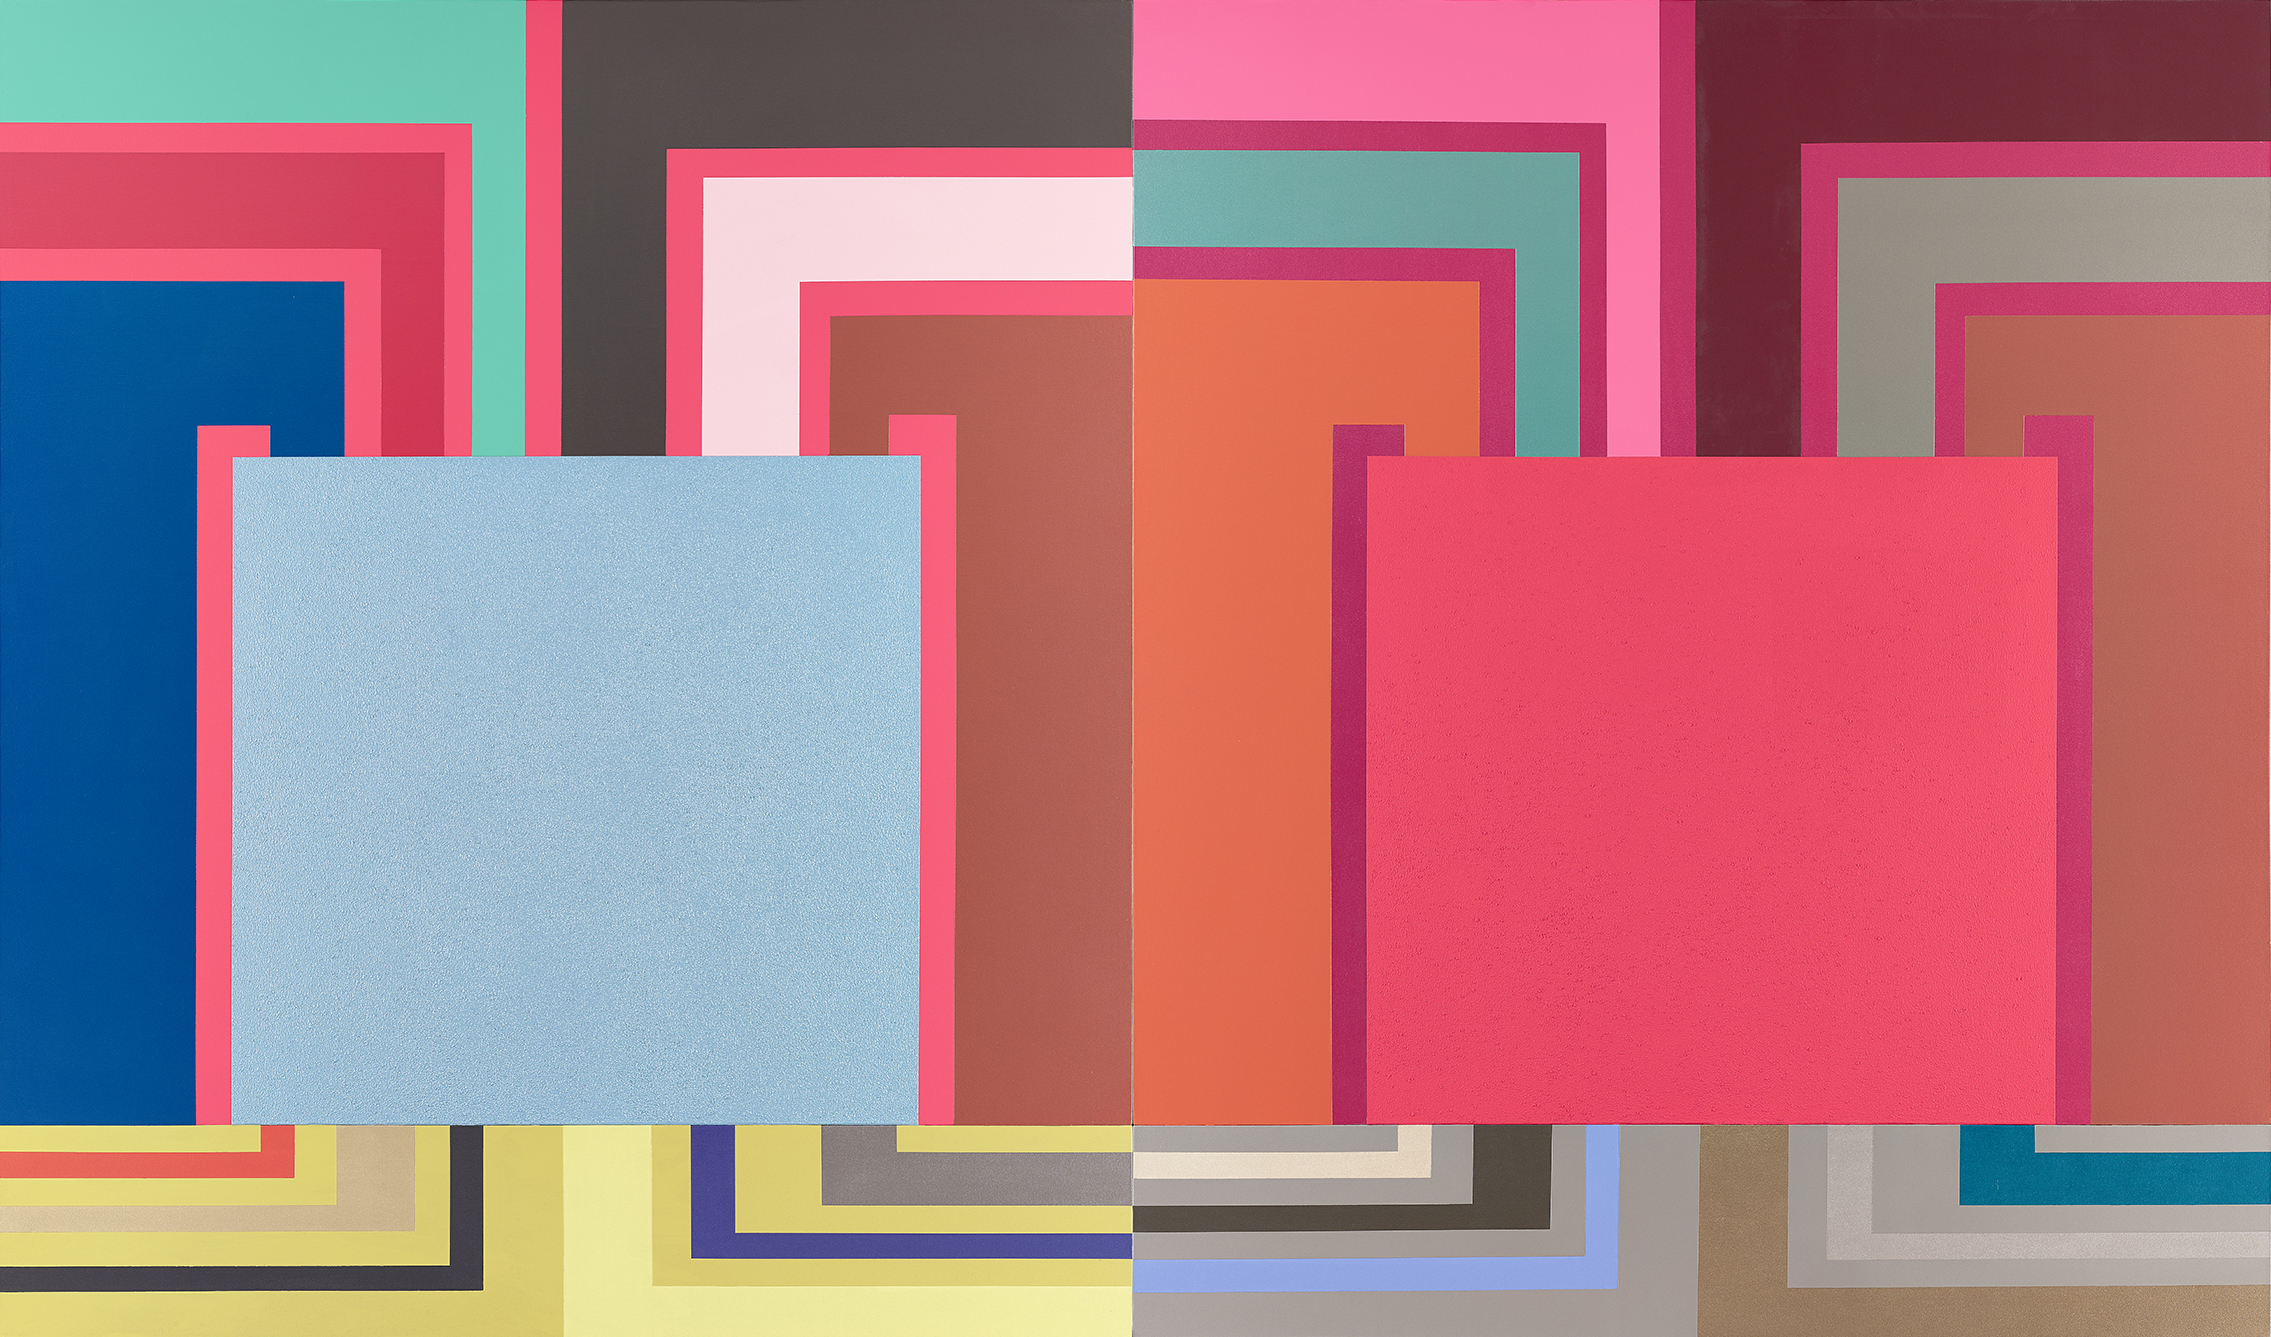 Sperone Westwater Peter Halley Heat, 2001, acrylic, fluorescent acrylic, metallic acrylic, pearlescent, acrylic, and Roll-a-Tex on canvas, cm 302.3x513.1